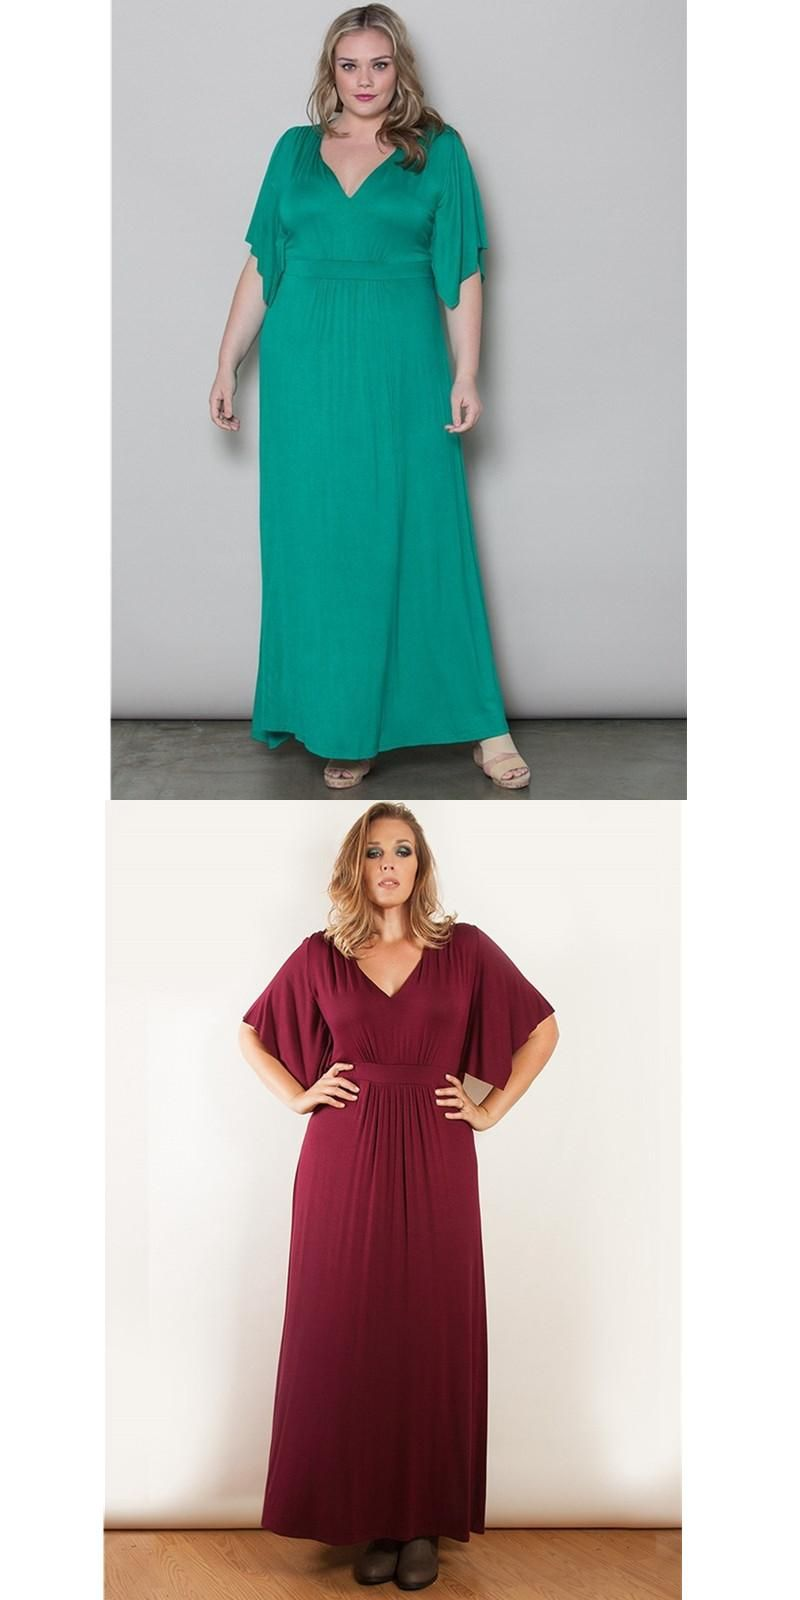 Maxi Dress Top Fashion Time-limited V-neck Casual Summer Women Dress ...